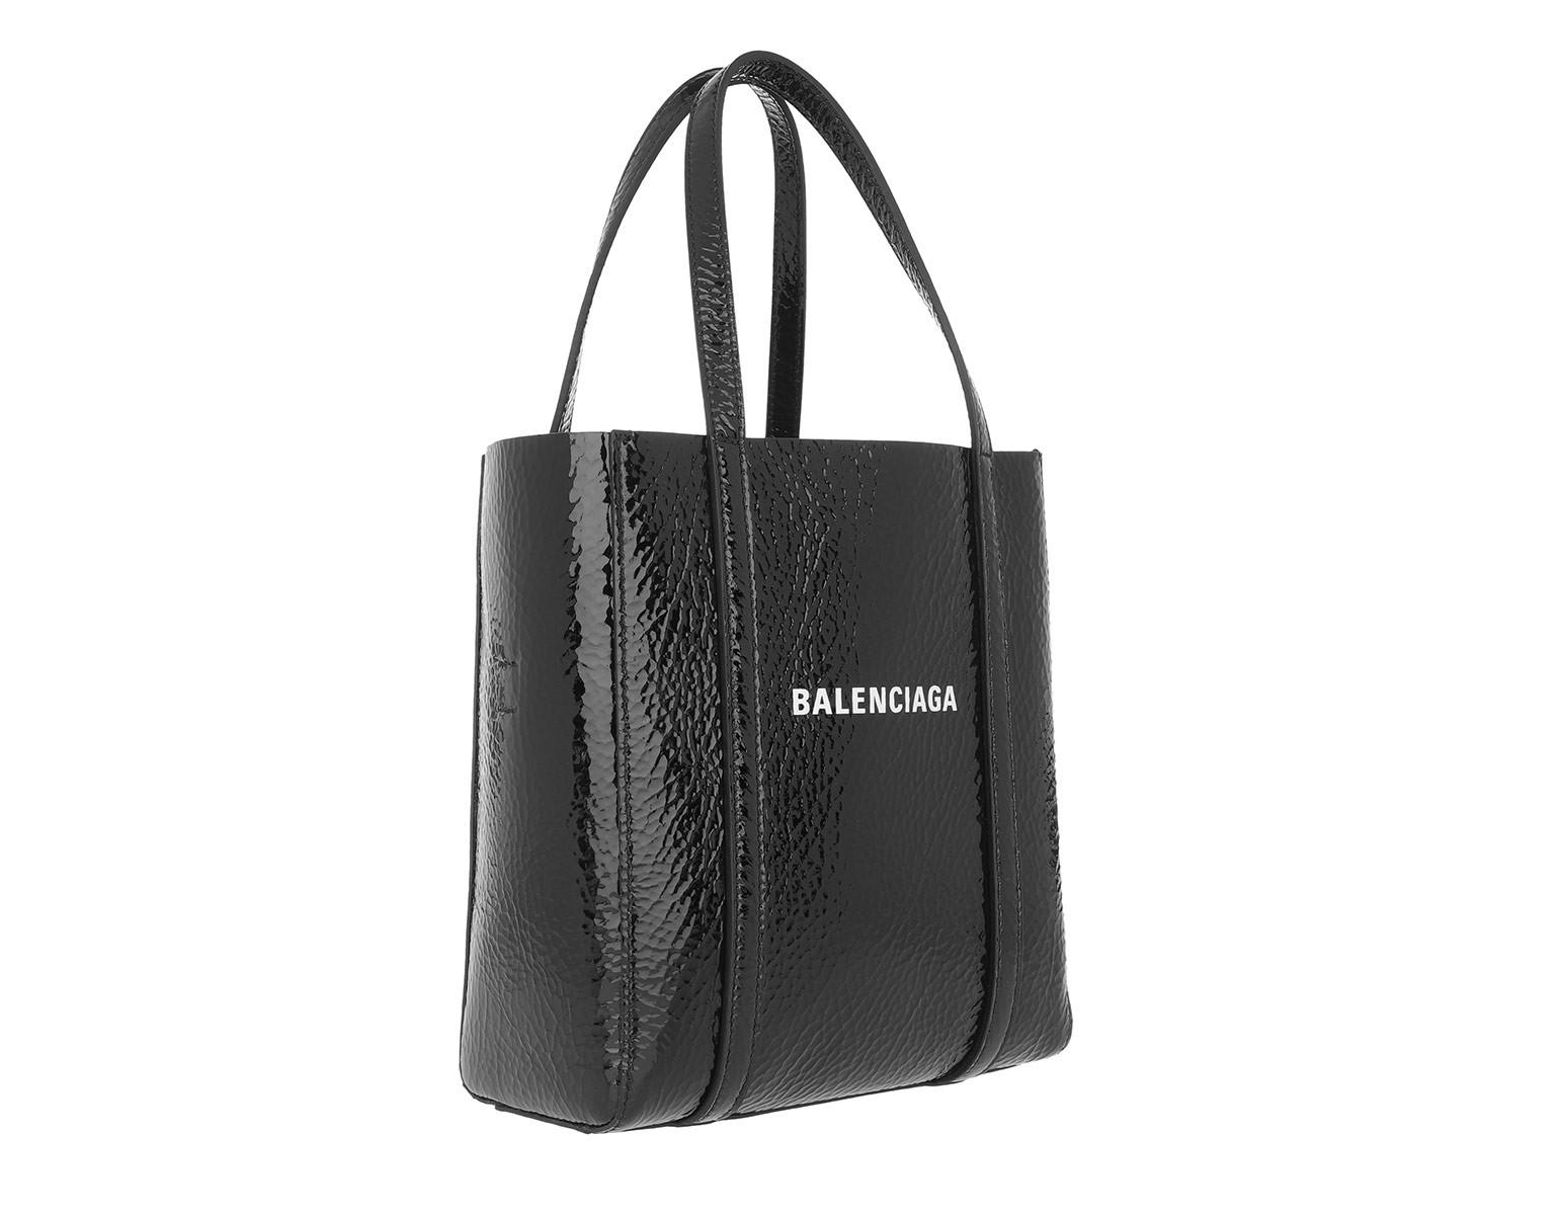 b0b2784eac Balenciaga Small Bazar Shopper Leather Black/gold in Black - Lyst